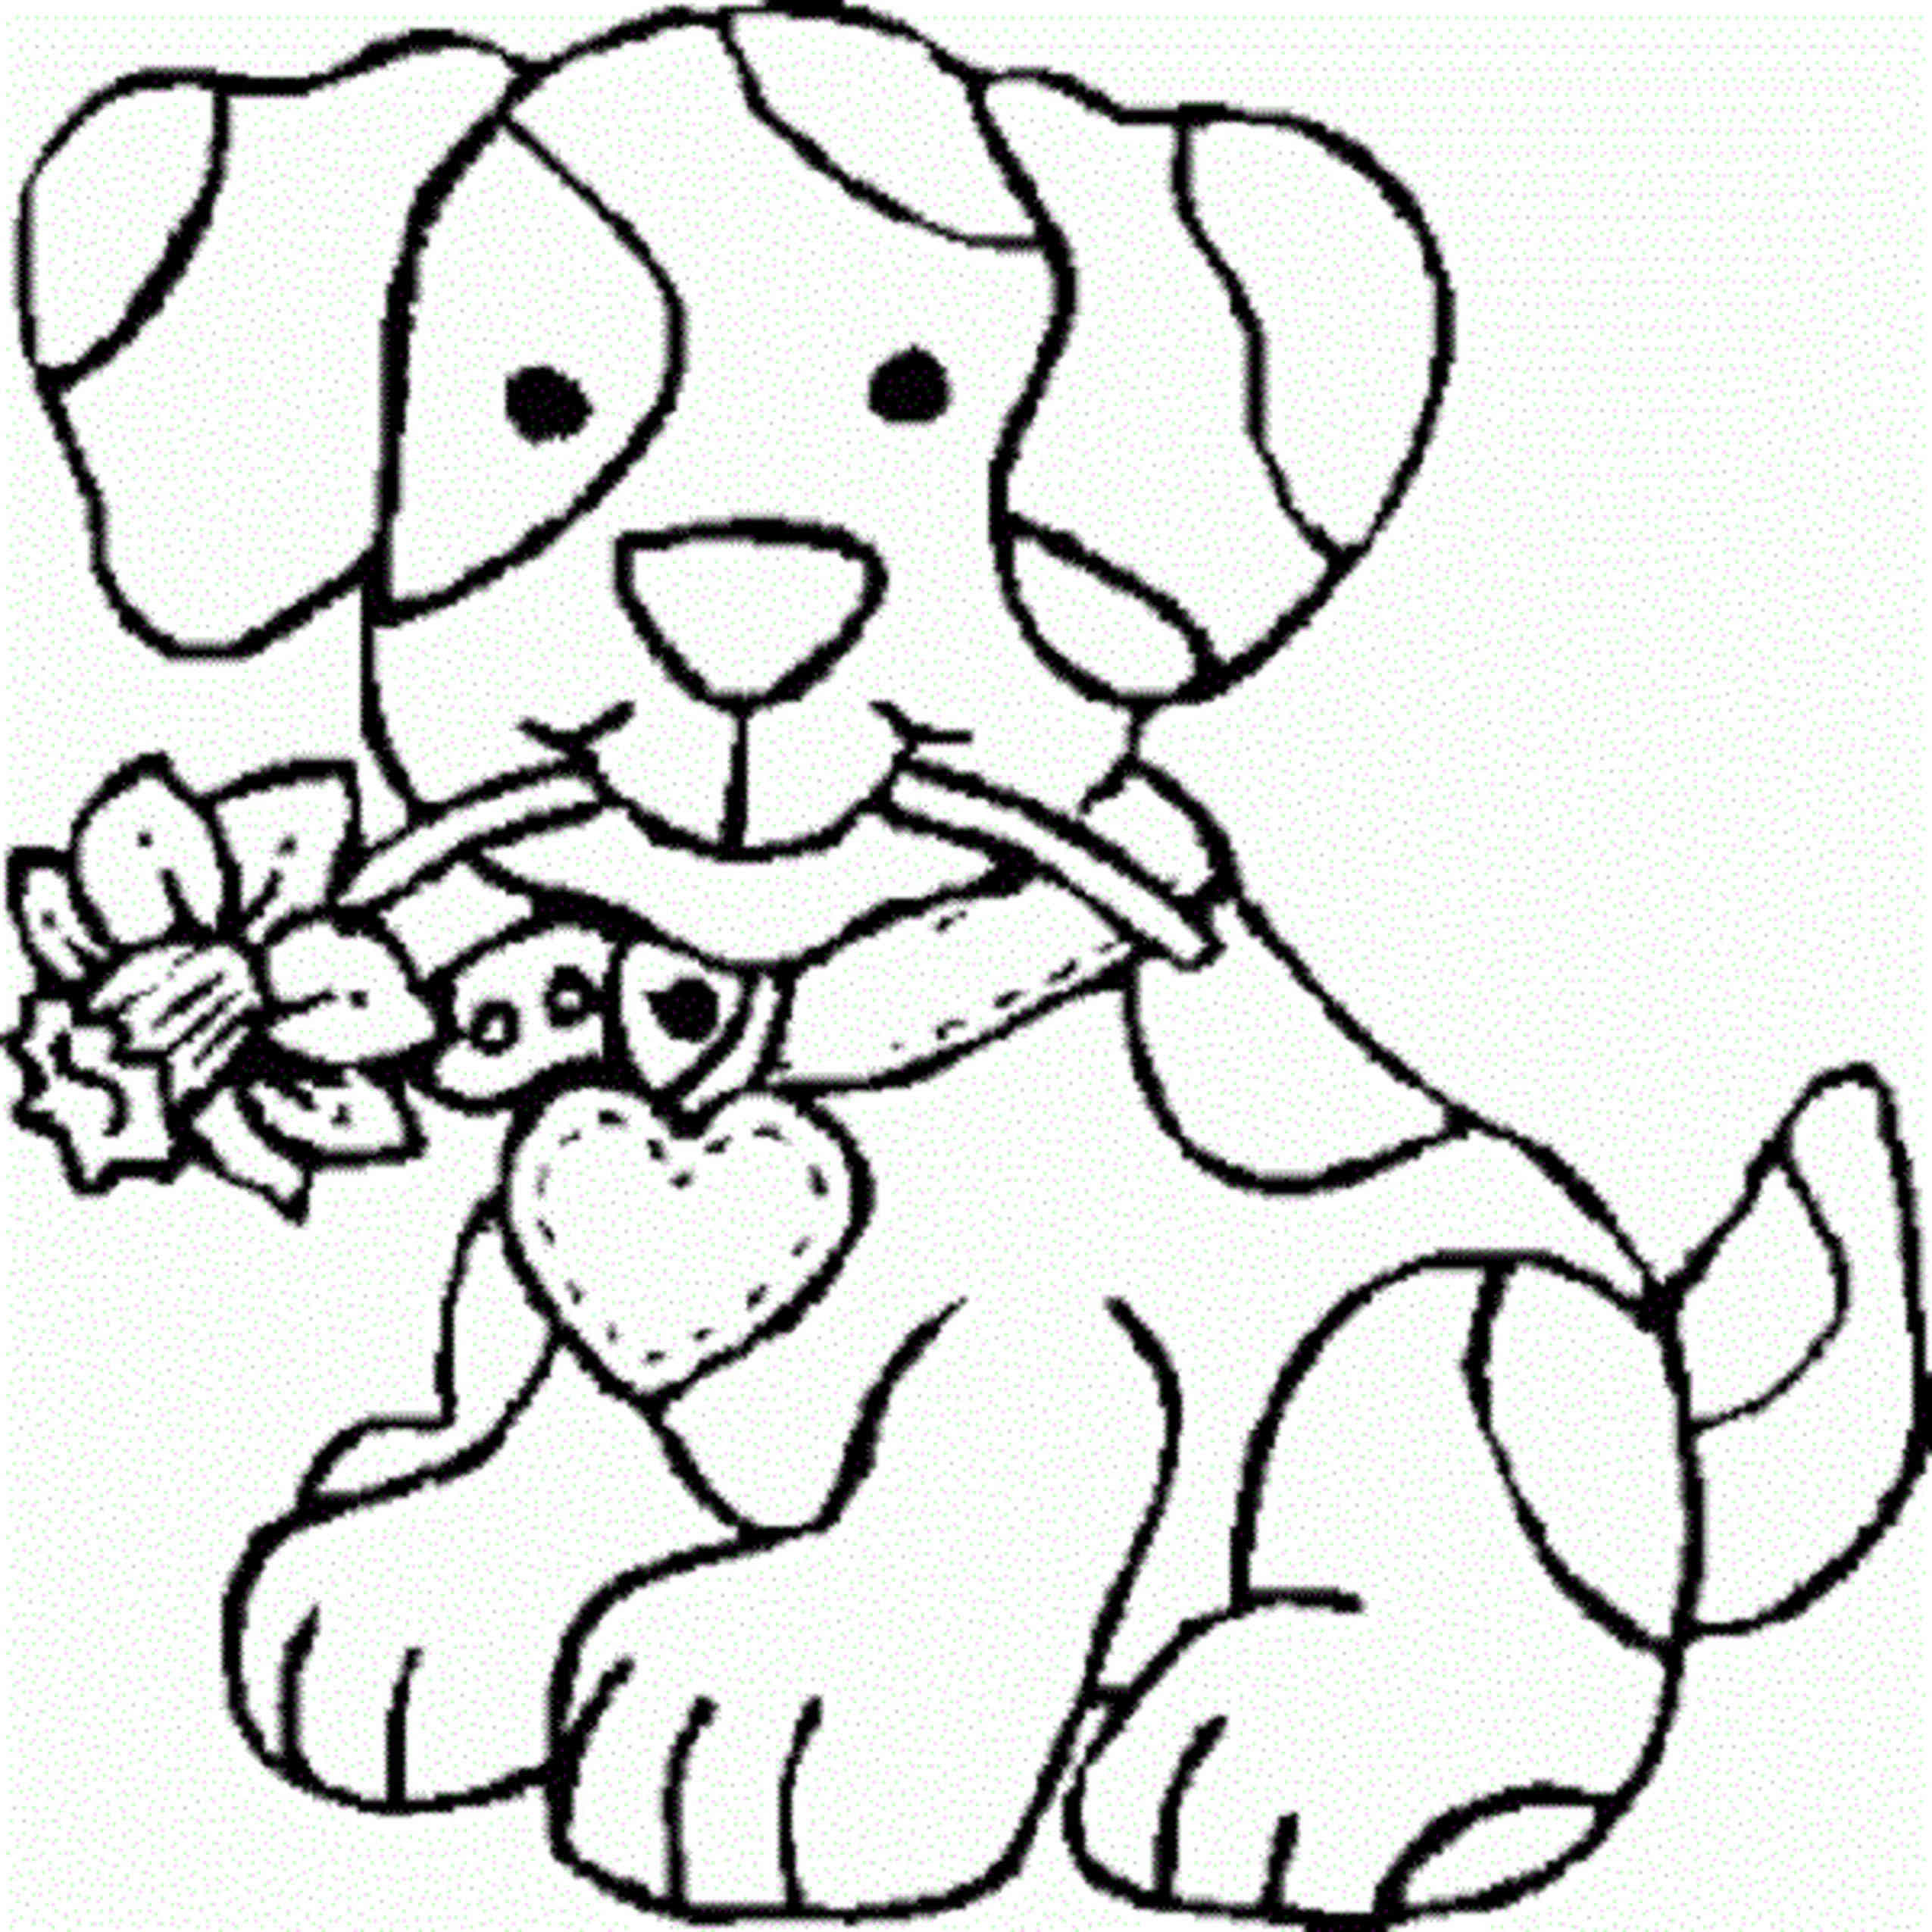 Printable Coloring Sheets For Girls  Coloring Pages For Teens